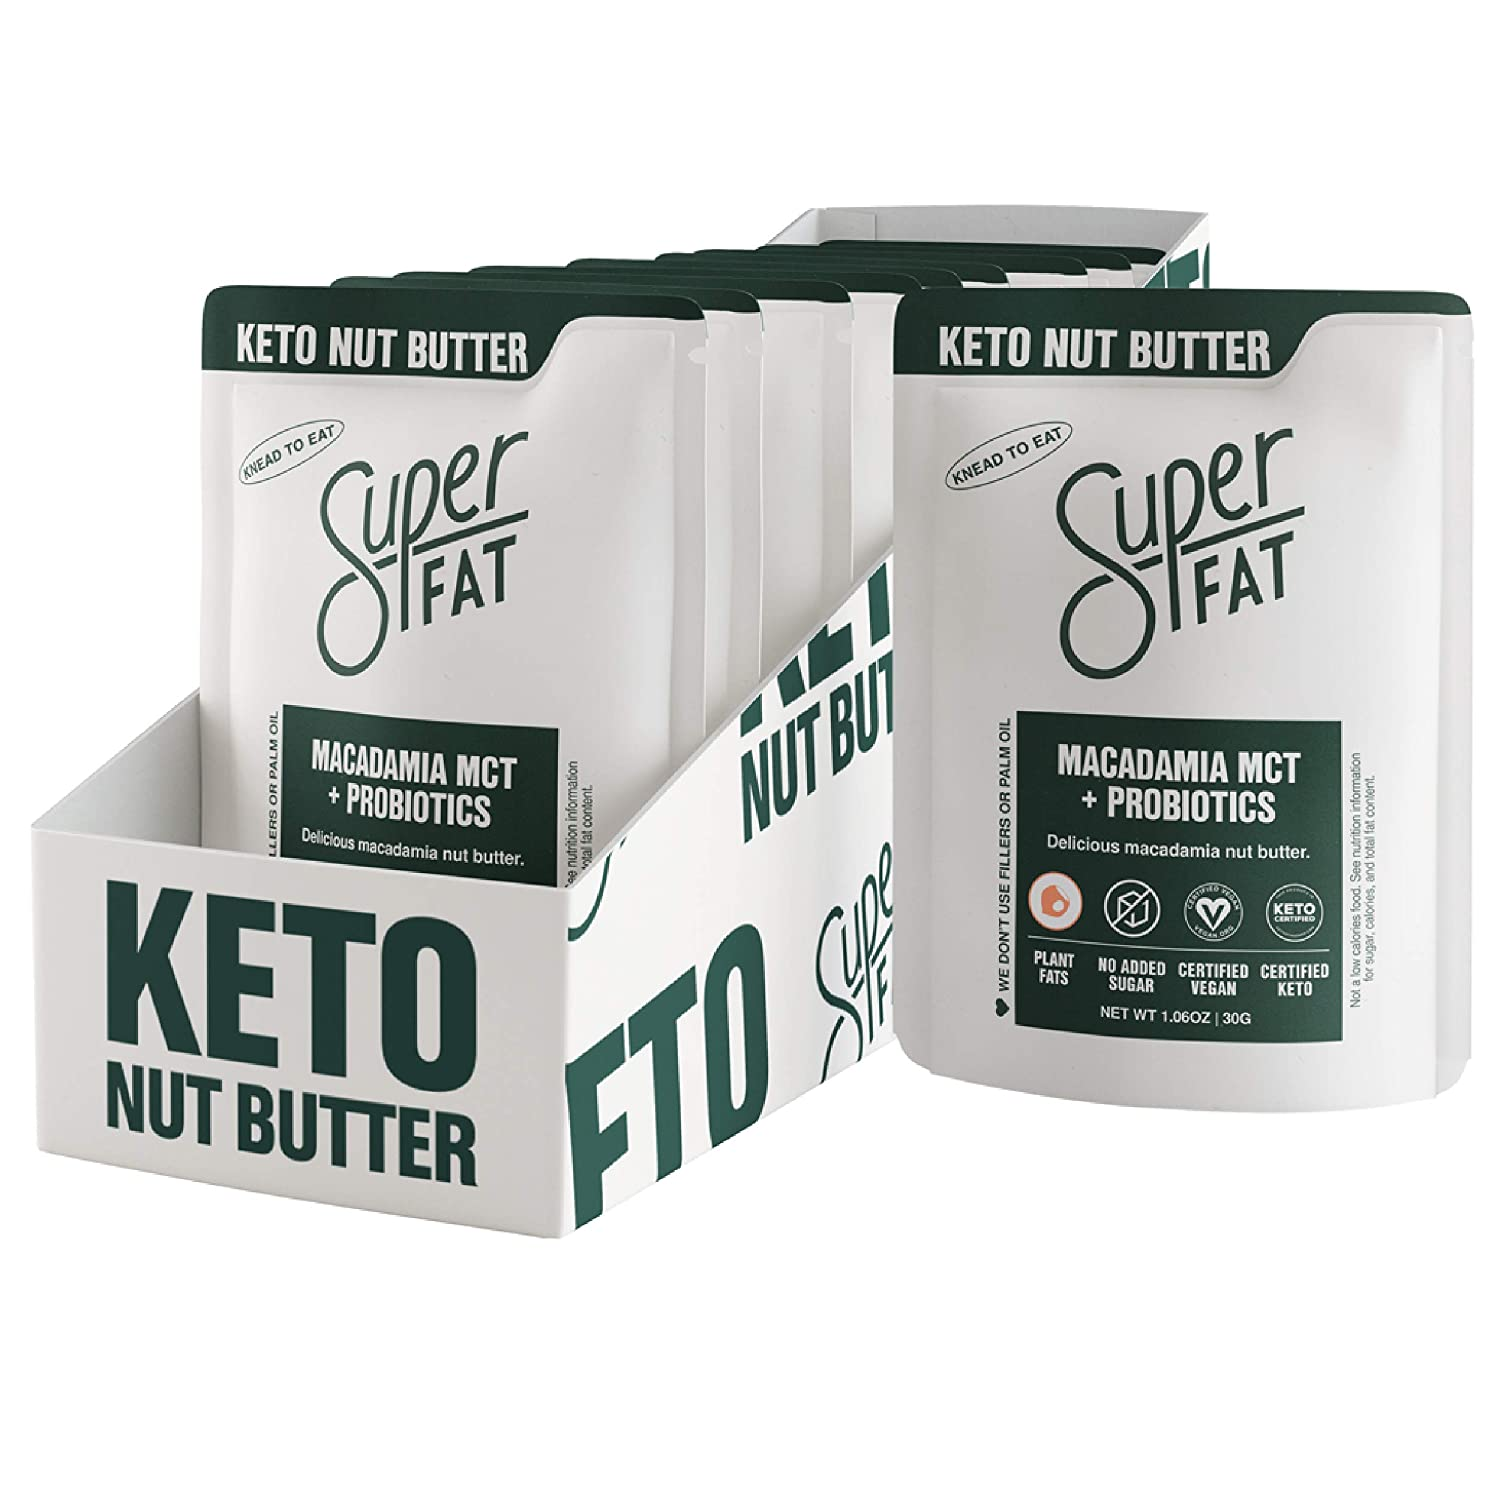 SuperFat Nut Butter Keto Snacks - Macadamia & Almond Nut Butter Fat Bomb Paleo Snack Improves Energy, Metabolism & Brain Function, Vegan, Gluten Free 8 x 1.0 oz (Macadamia MCT + Probiotics)